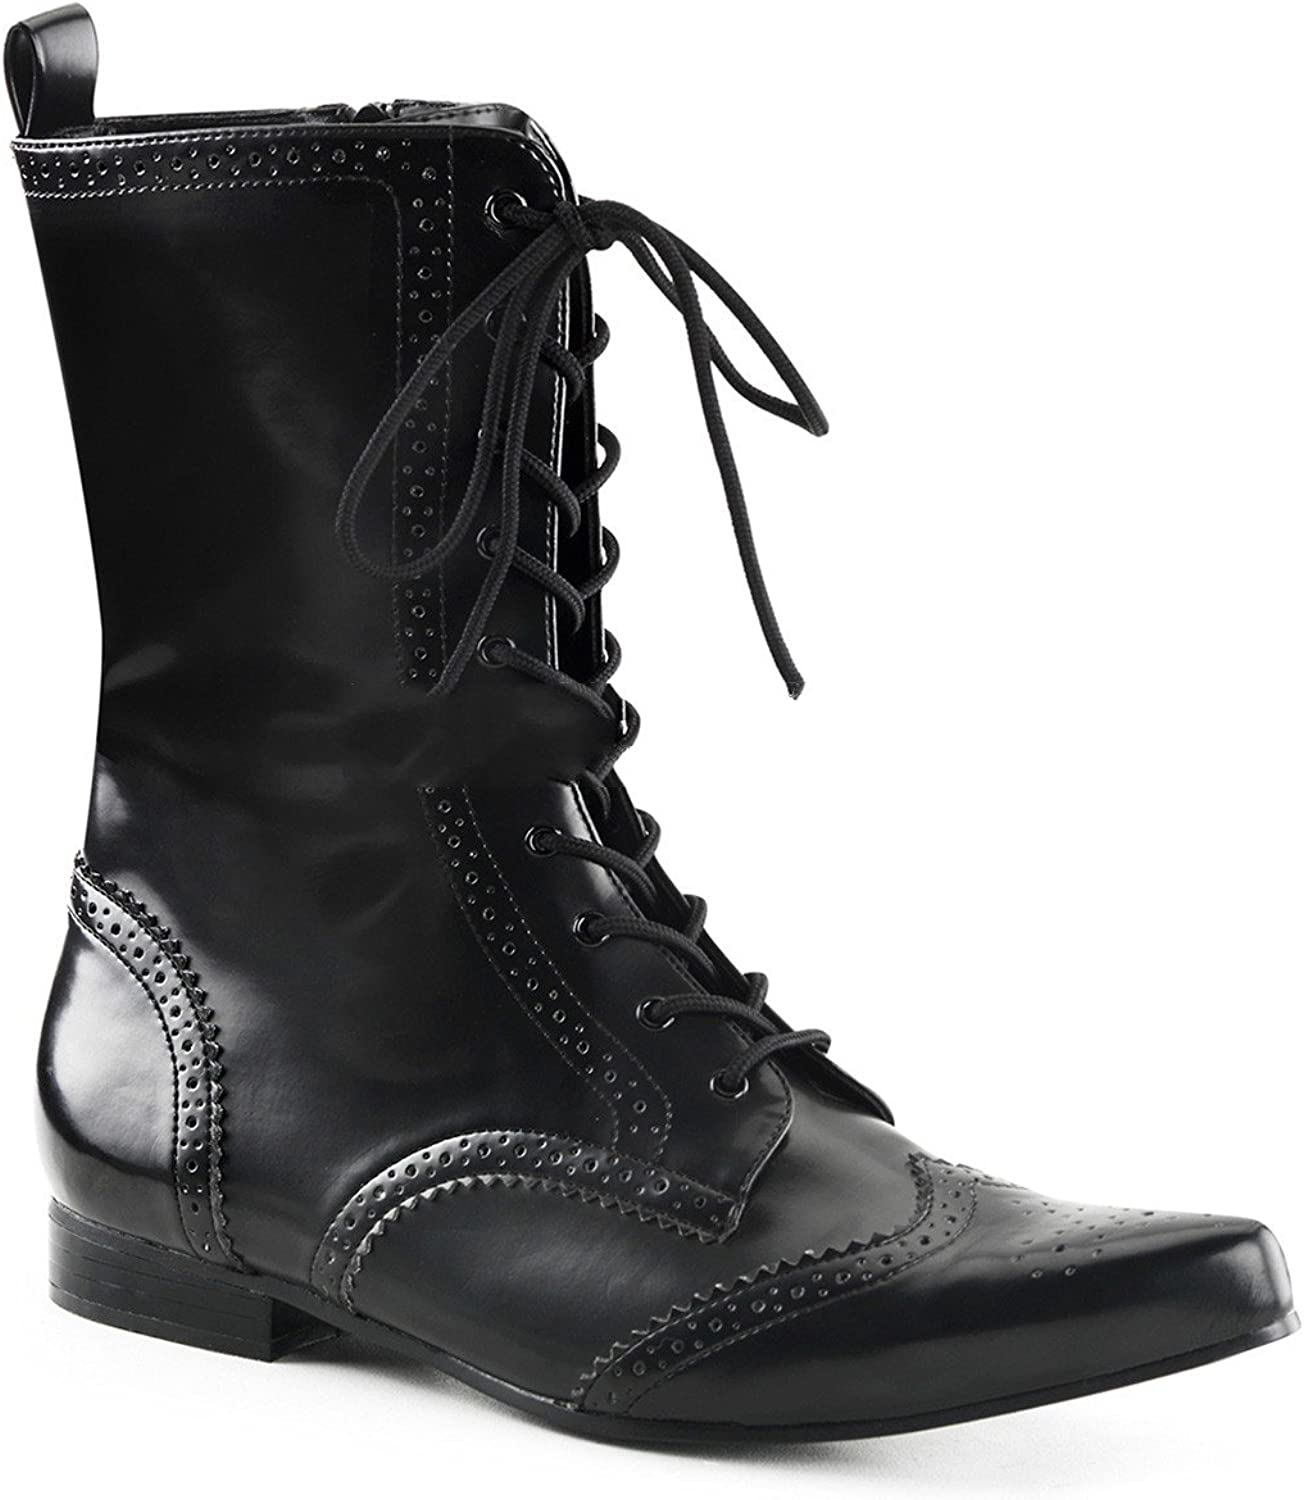 Demonia Brogue-10 - Gothic Punk Industrial Punk Industrial Pikes Booties shoes 7-12